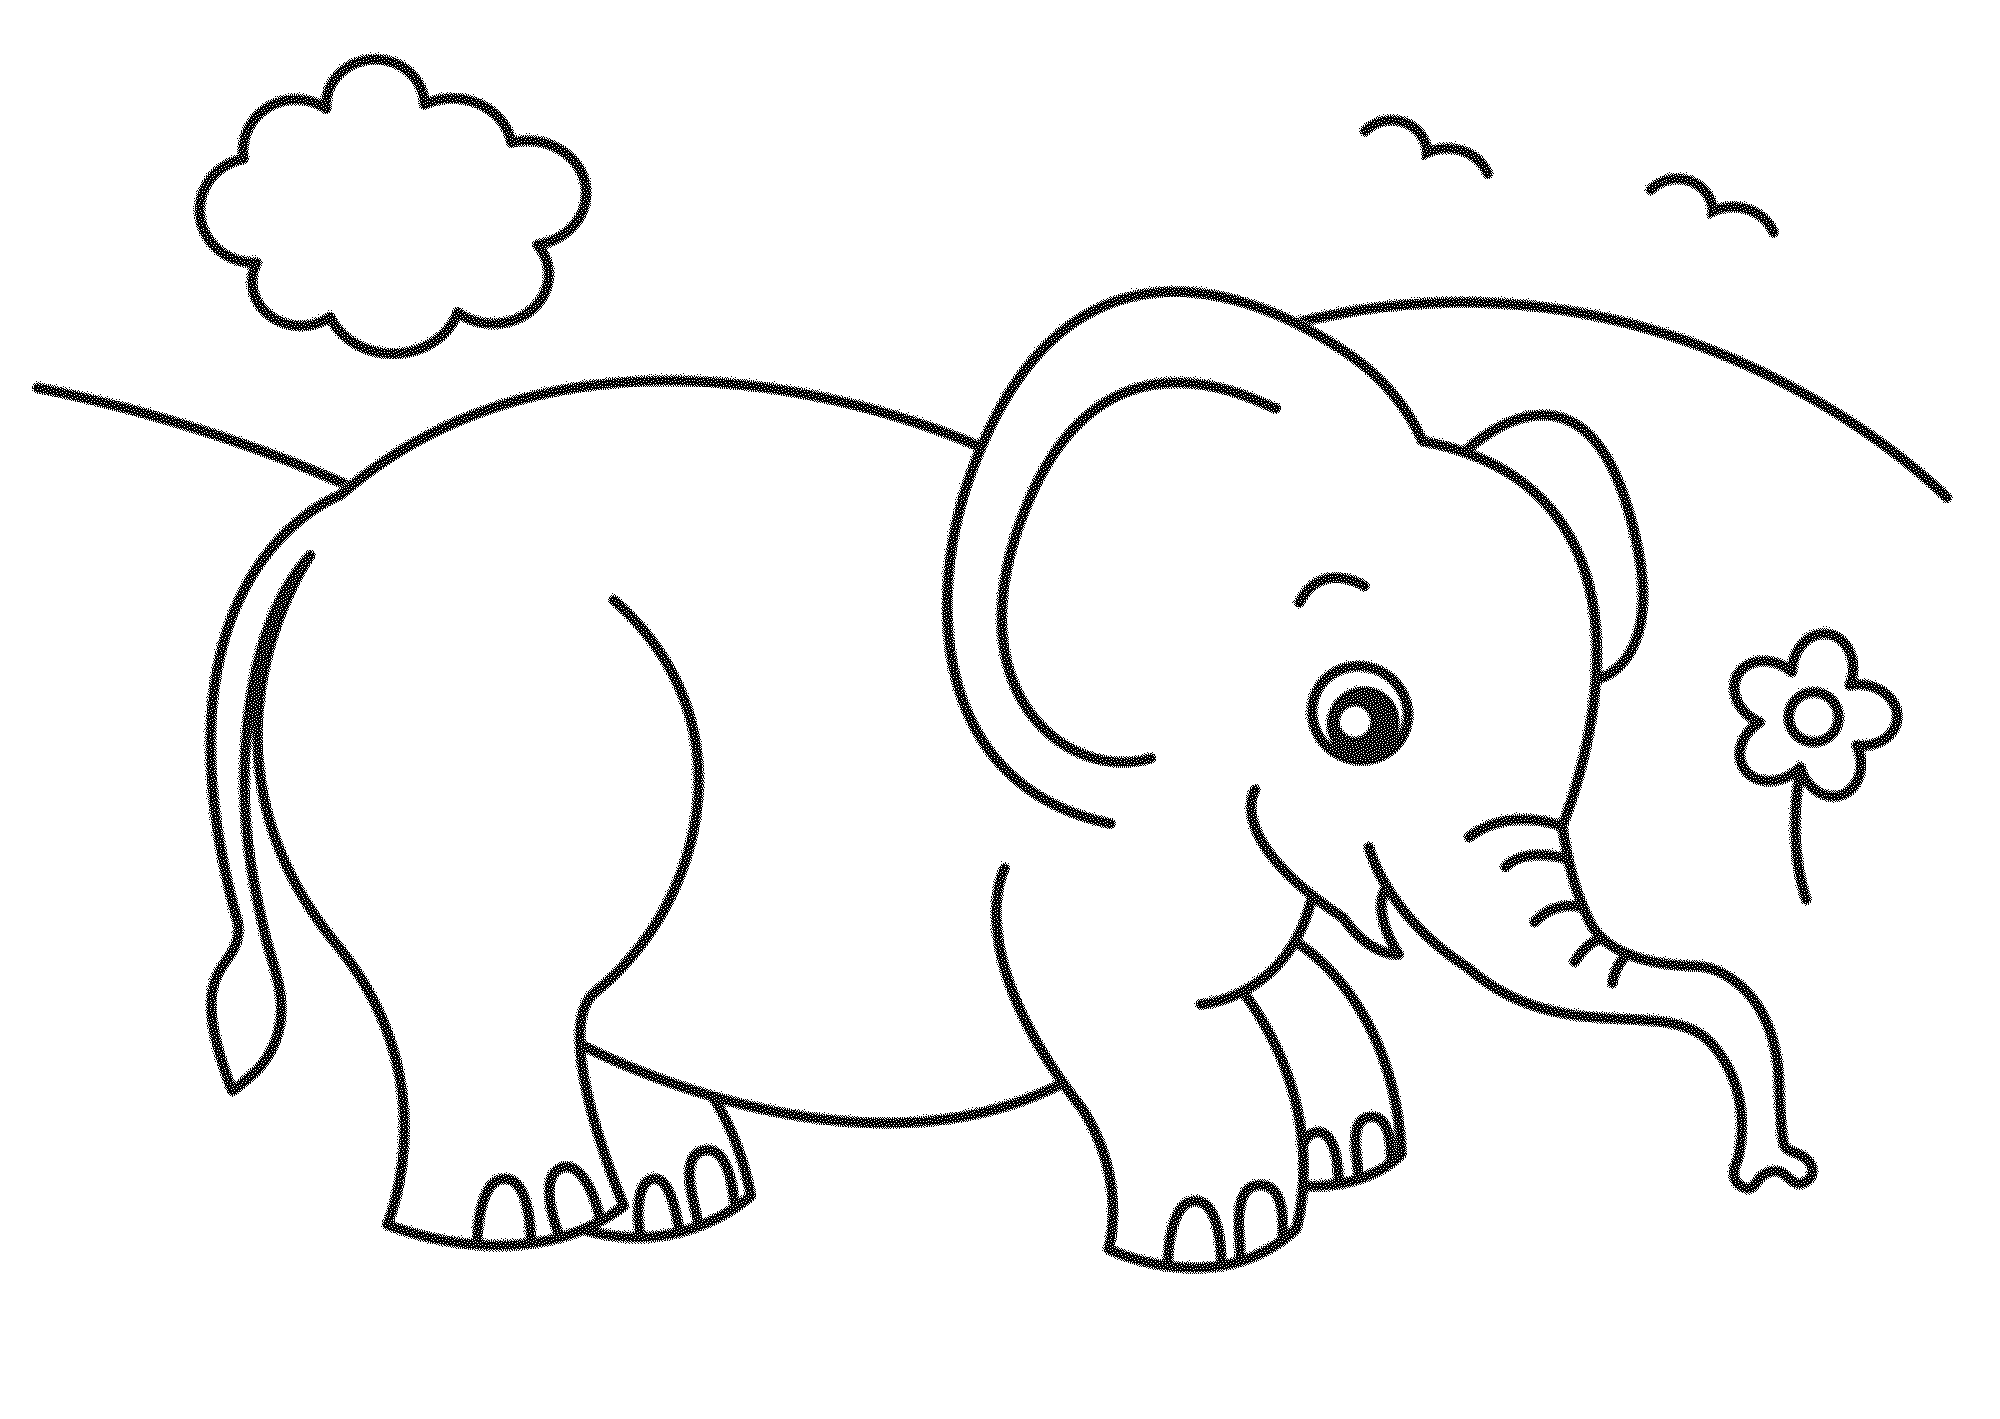 Print & Download Teaching Kids through Elephant Coloring Pages